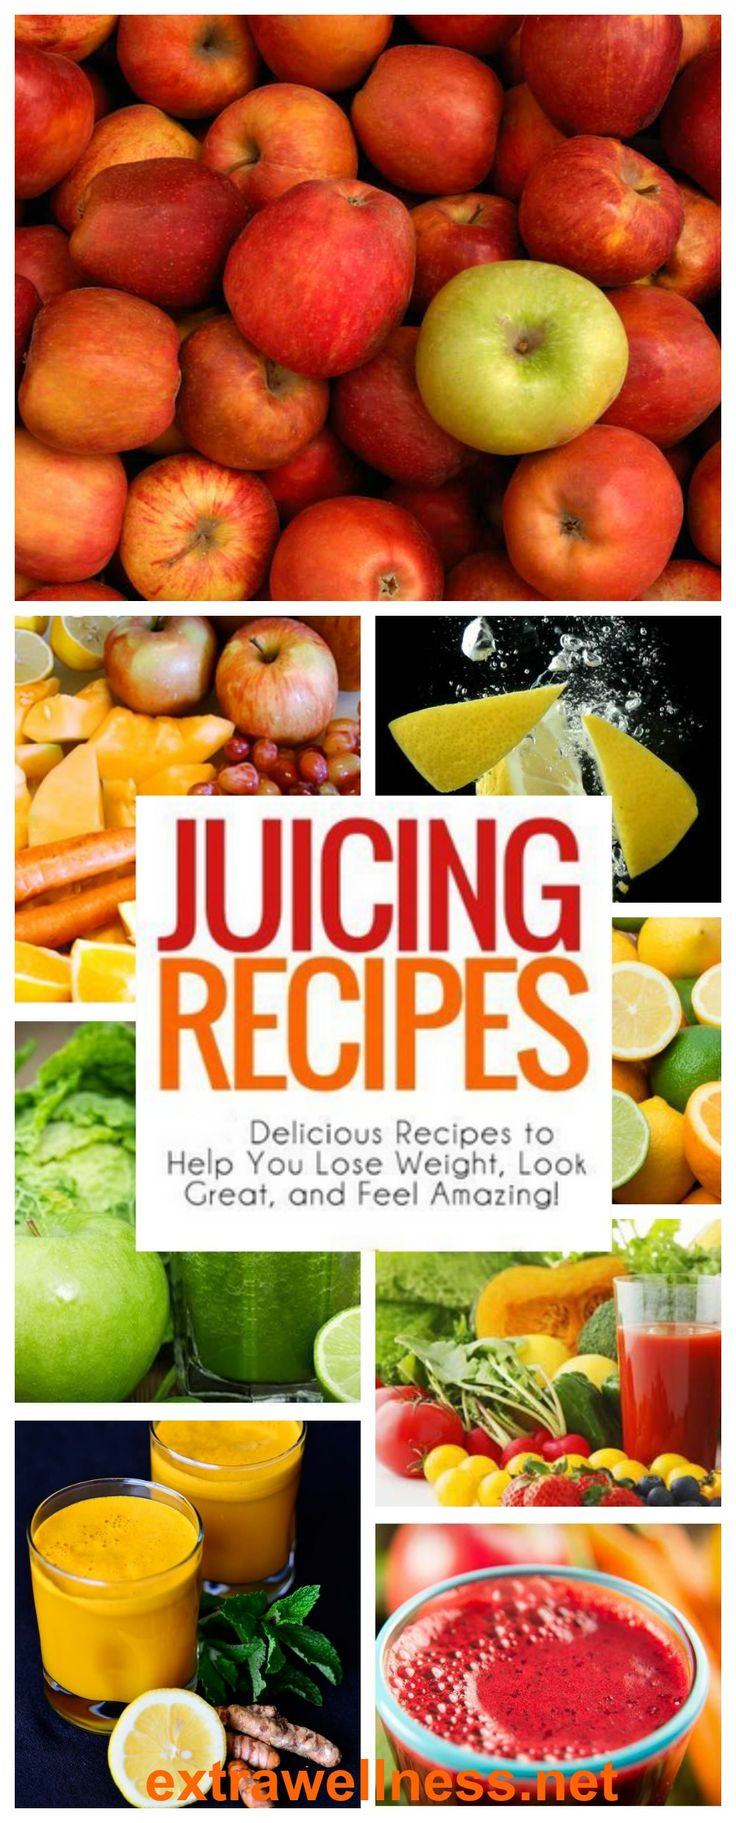 The vERY Best Juicing Recipes for Weight Loss.(Extremely Effective with Weight loss of 10 pounds in just 2 Weeks) Try some of these weight-loss drinks and just watch the pounds fall off.  #juicing, #weightloss